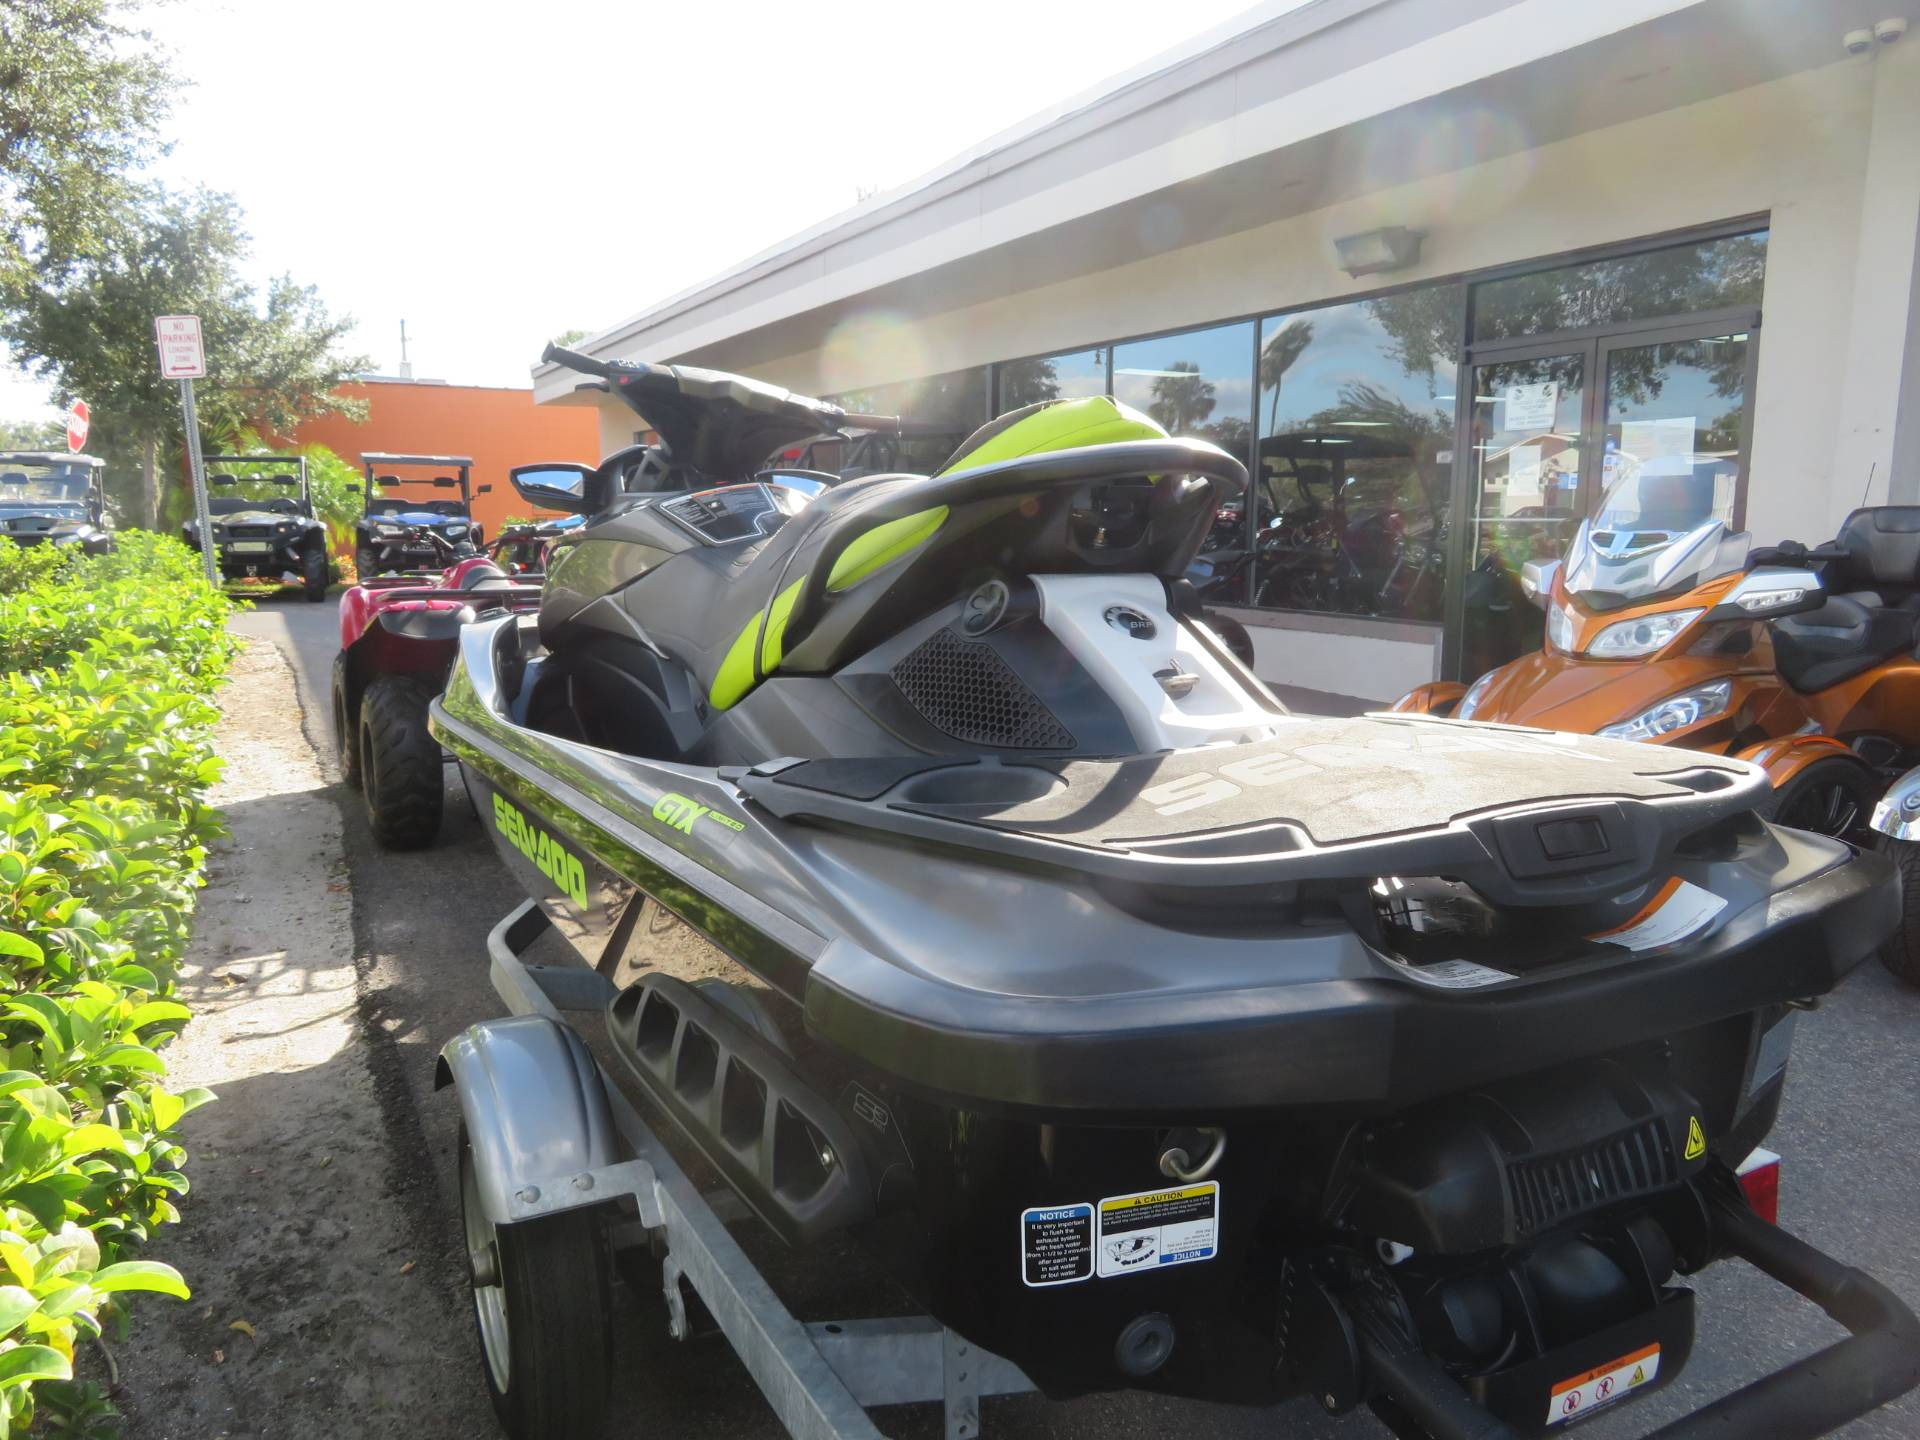 2015 Sea-Doo GTX Limited iS™ 260 in Sanford, Florida - Photo 8